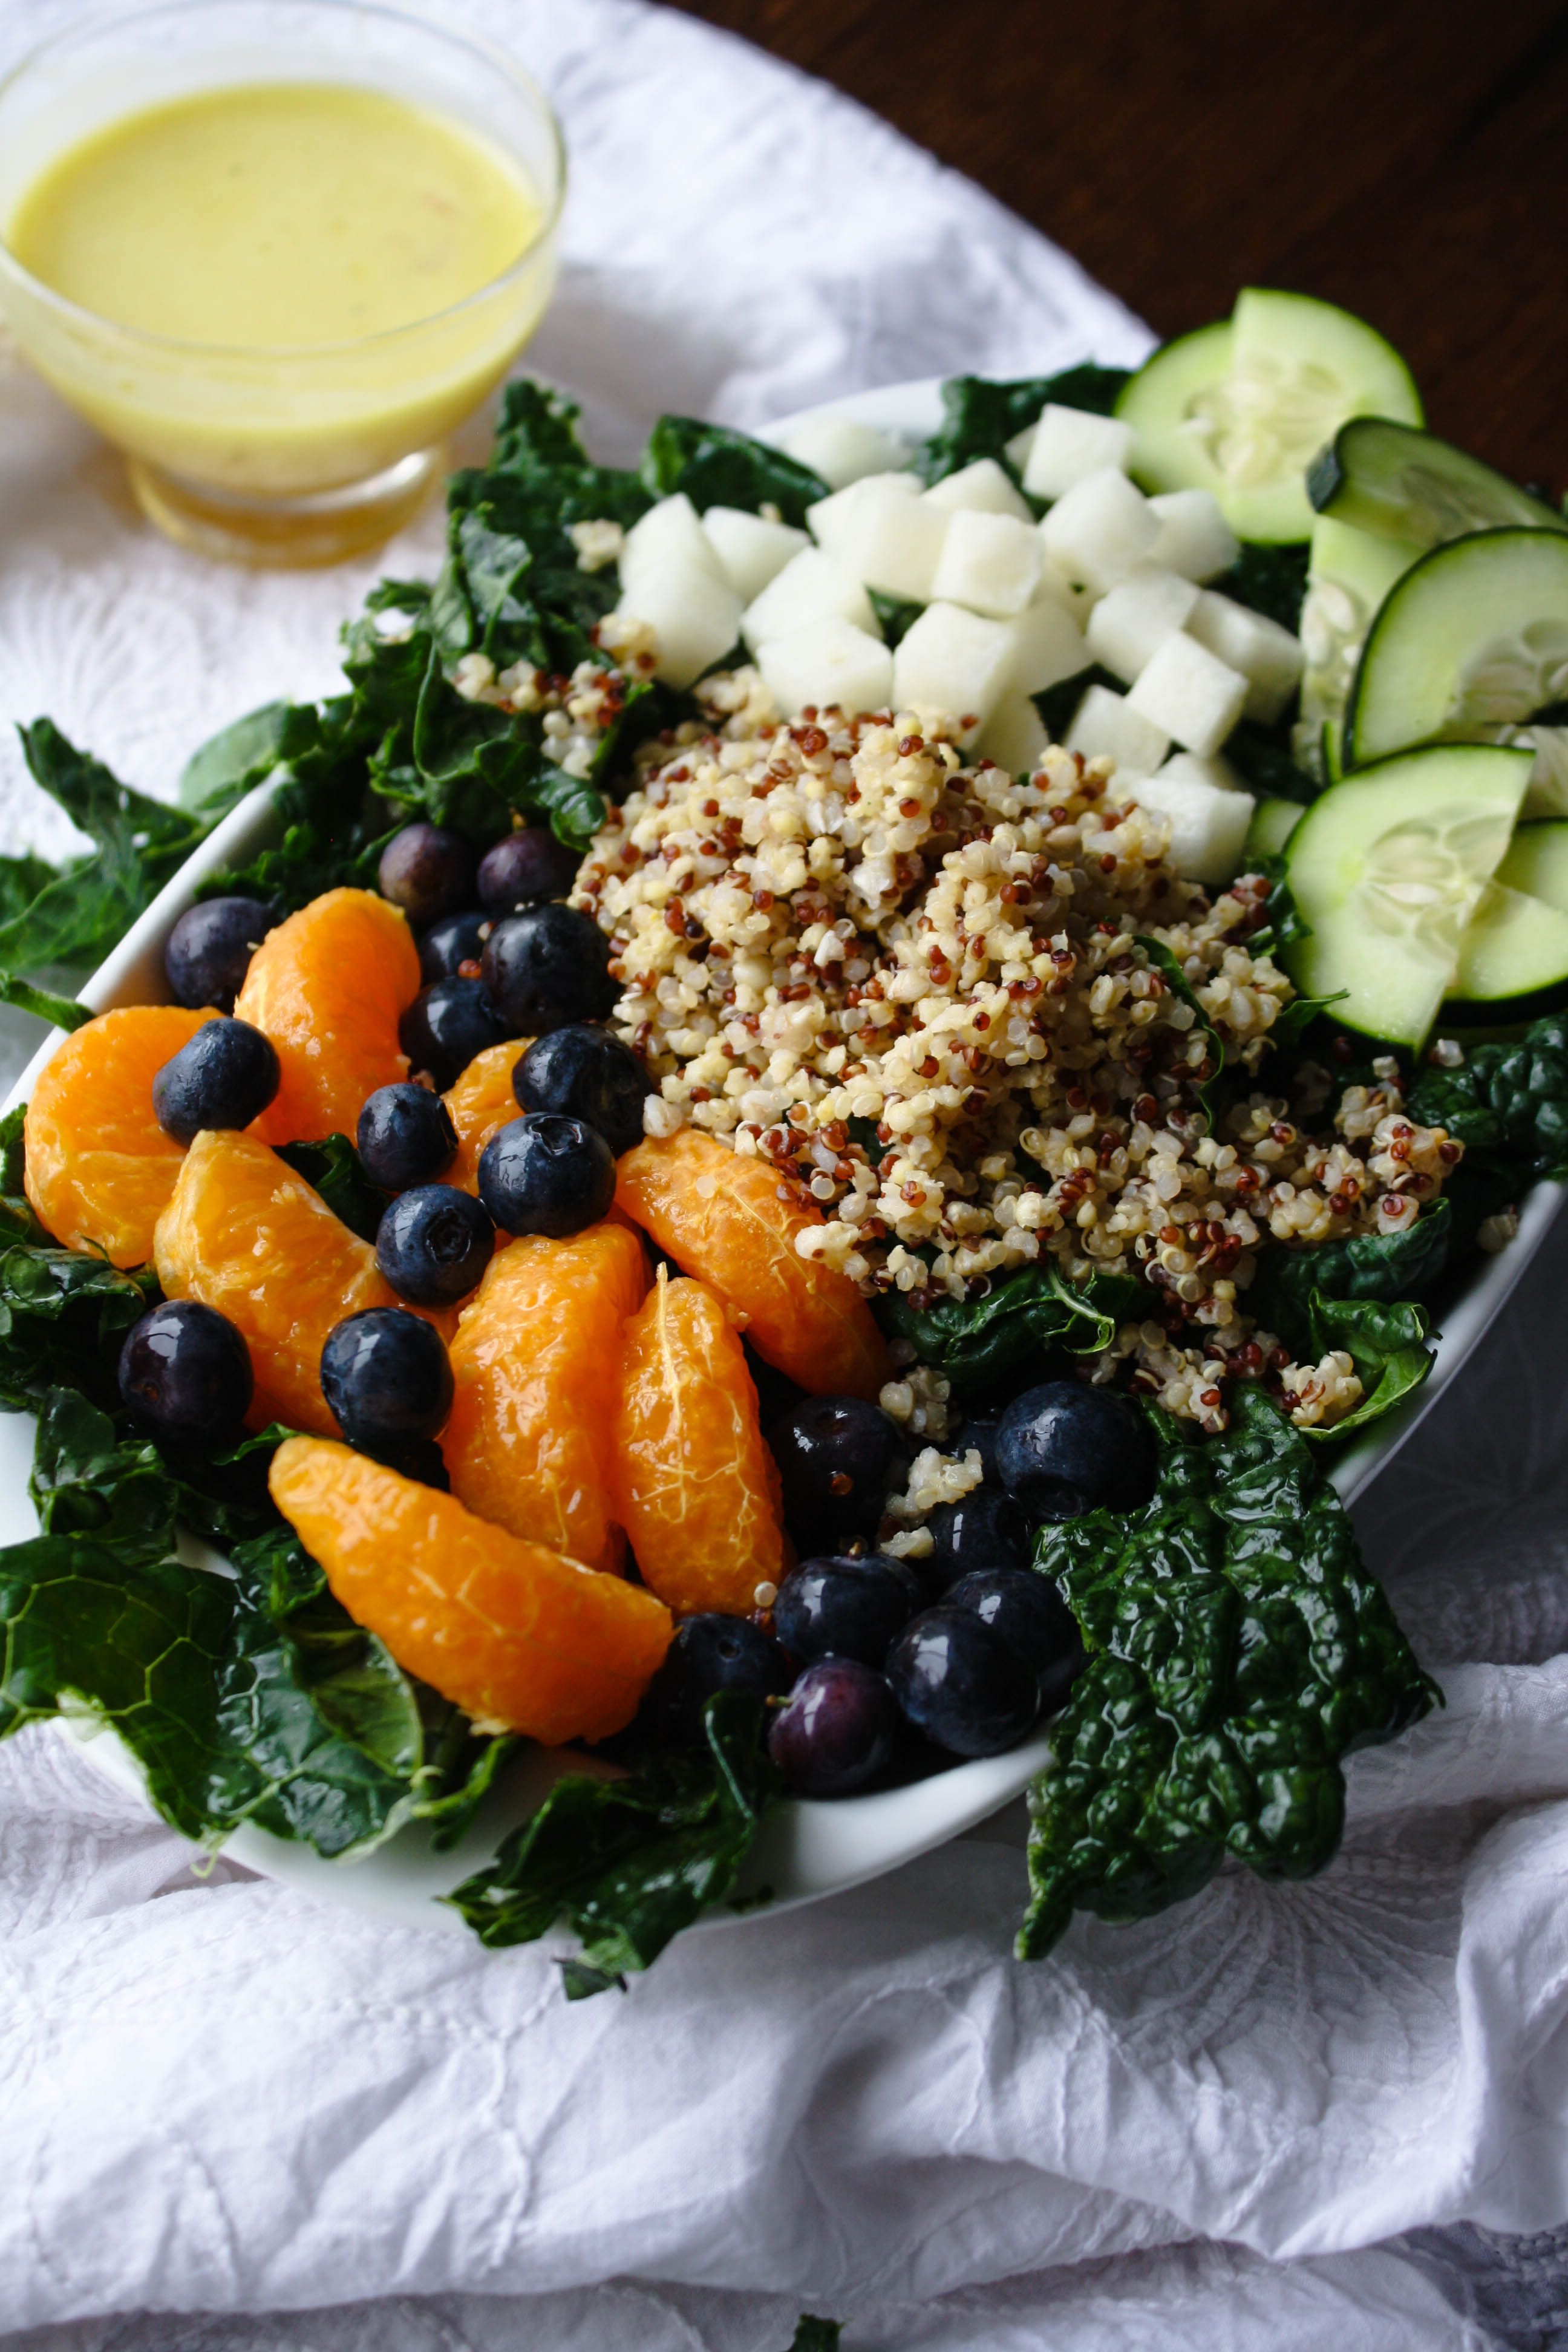 Kale-Quinoa Salad with Orange Vinaigrette makes a great meal. This salad is filling, delicious, and healthy!